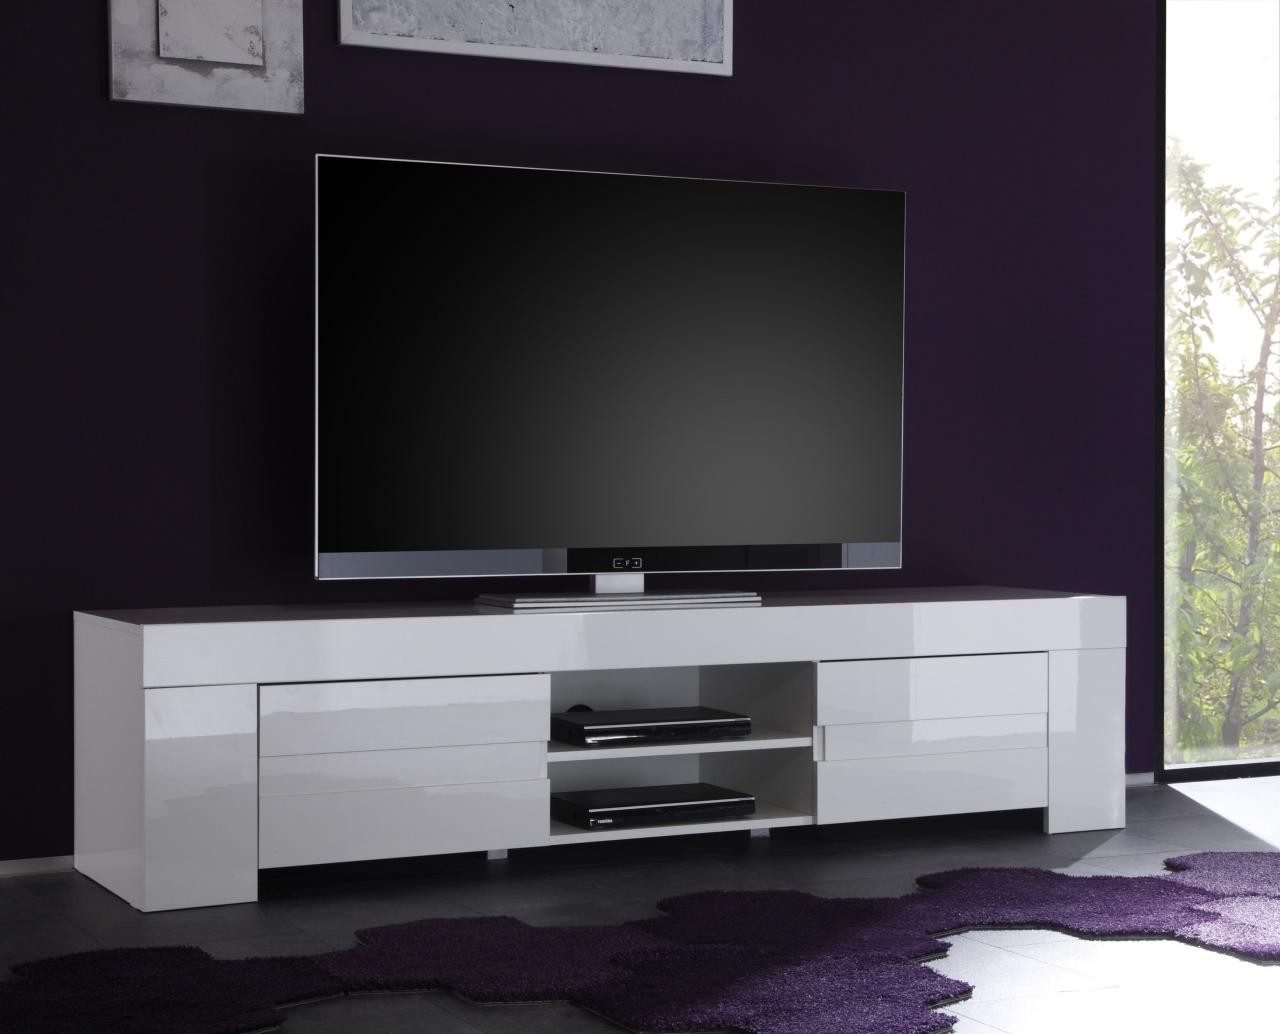 Meuble tv hifi design meuble tv hifi design laqu blanc for Meuble tv xbox one